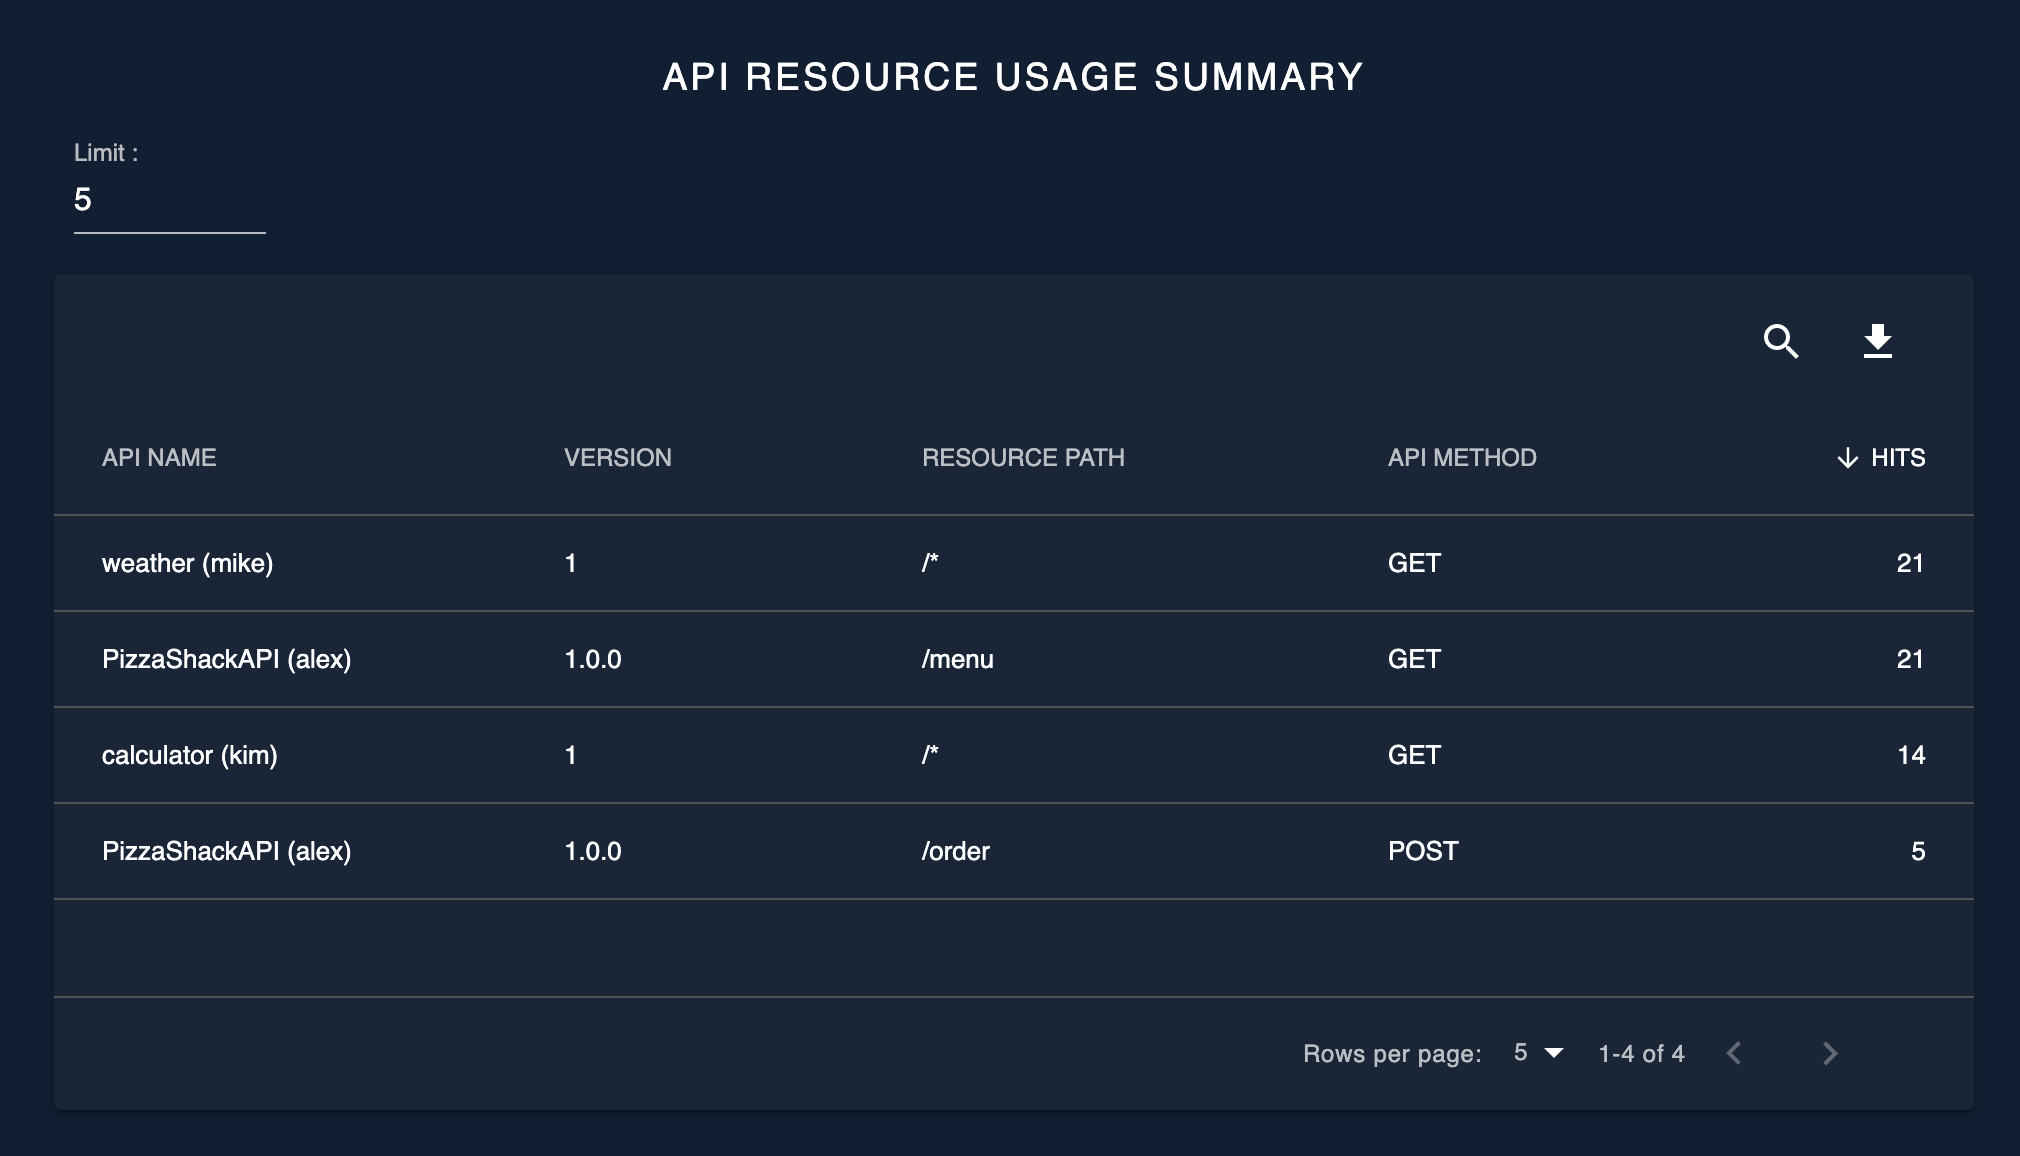 API resource usage summary